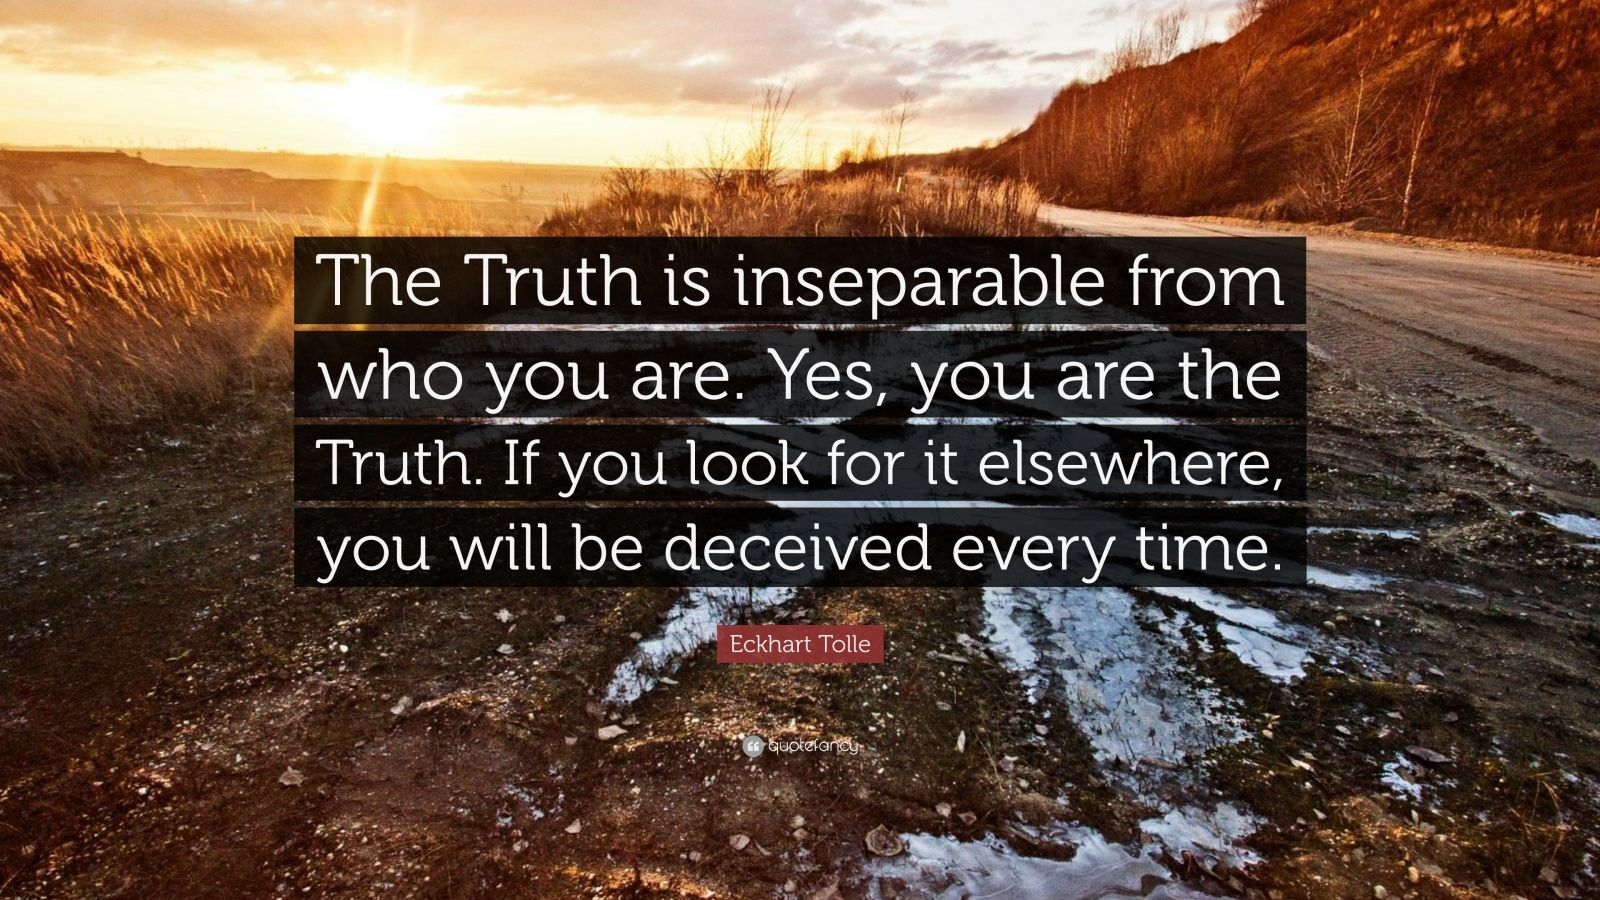 """Eckhart Tolle Quote: """"The Truth is inseparable from who you are. Yes, you are the Truth. If you look for it elsewhere, you will be deceived every time."""""""